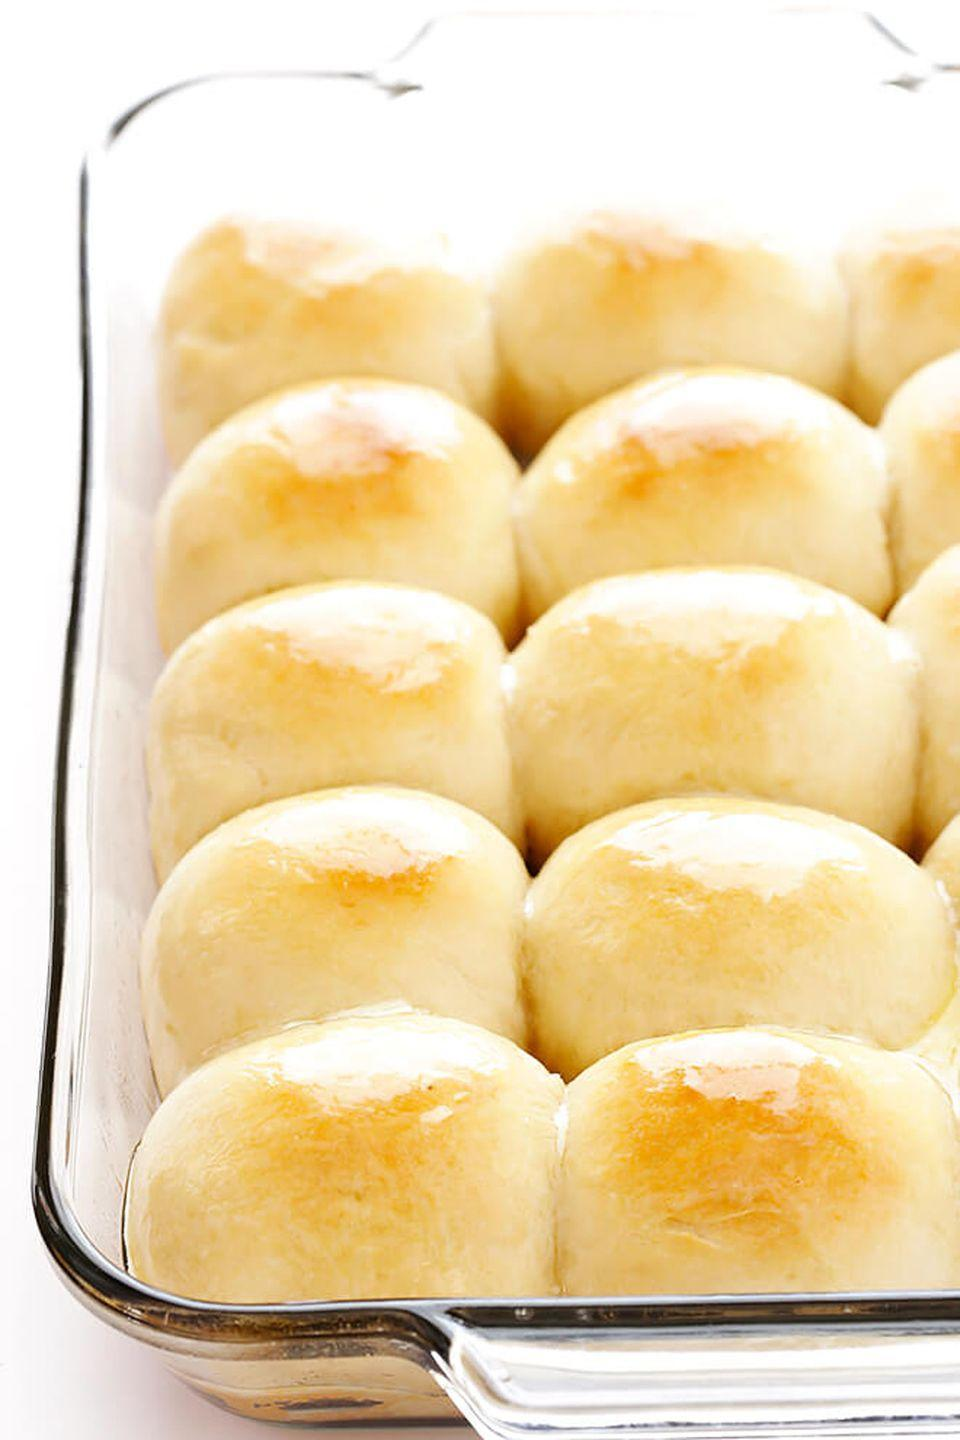 "<p>Skip the store-bought rolls and mix up a batch of these buttery bites that take under an hour to make. </p><p><strong>Get the recipe at <a href=""https://www.gimmesomeoven.com/1-hour-soft-buttery-dinner-rolls/"" rel=""nofollow noopener"" target=""_blank"" data-ylk=""slk:Gimme Some Oven"" class=""link rapid-noclick-resp"">Gimme Some Oven</a>.</strong> </p>"